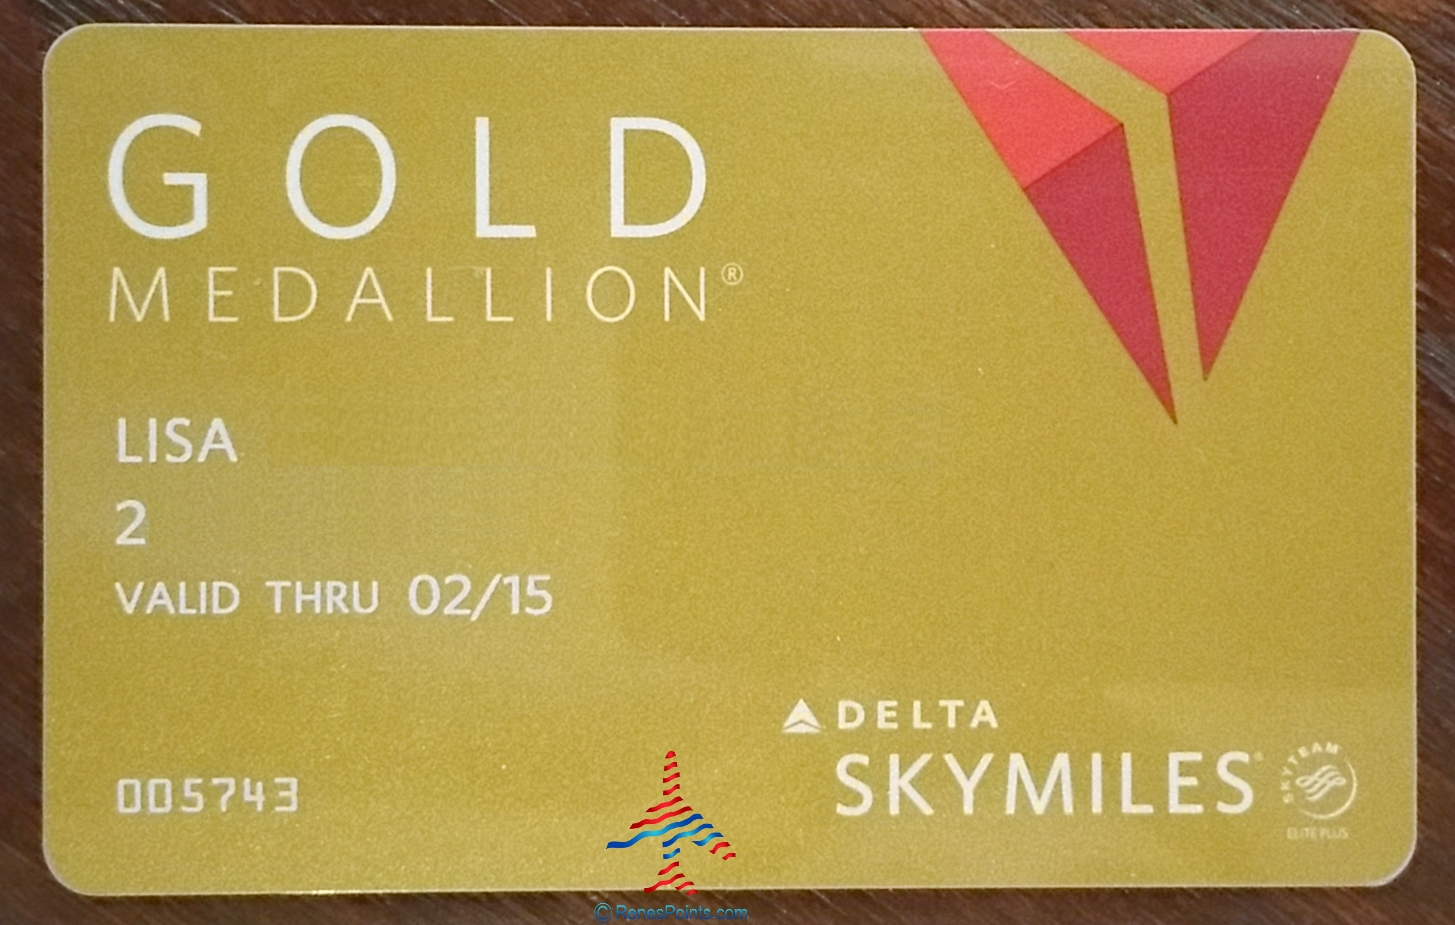 Gold Medallion Delta